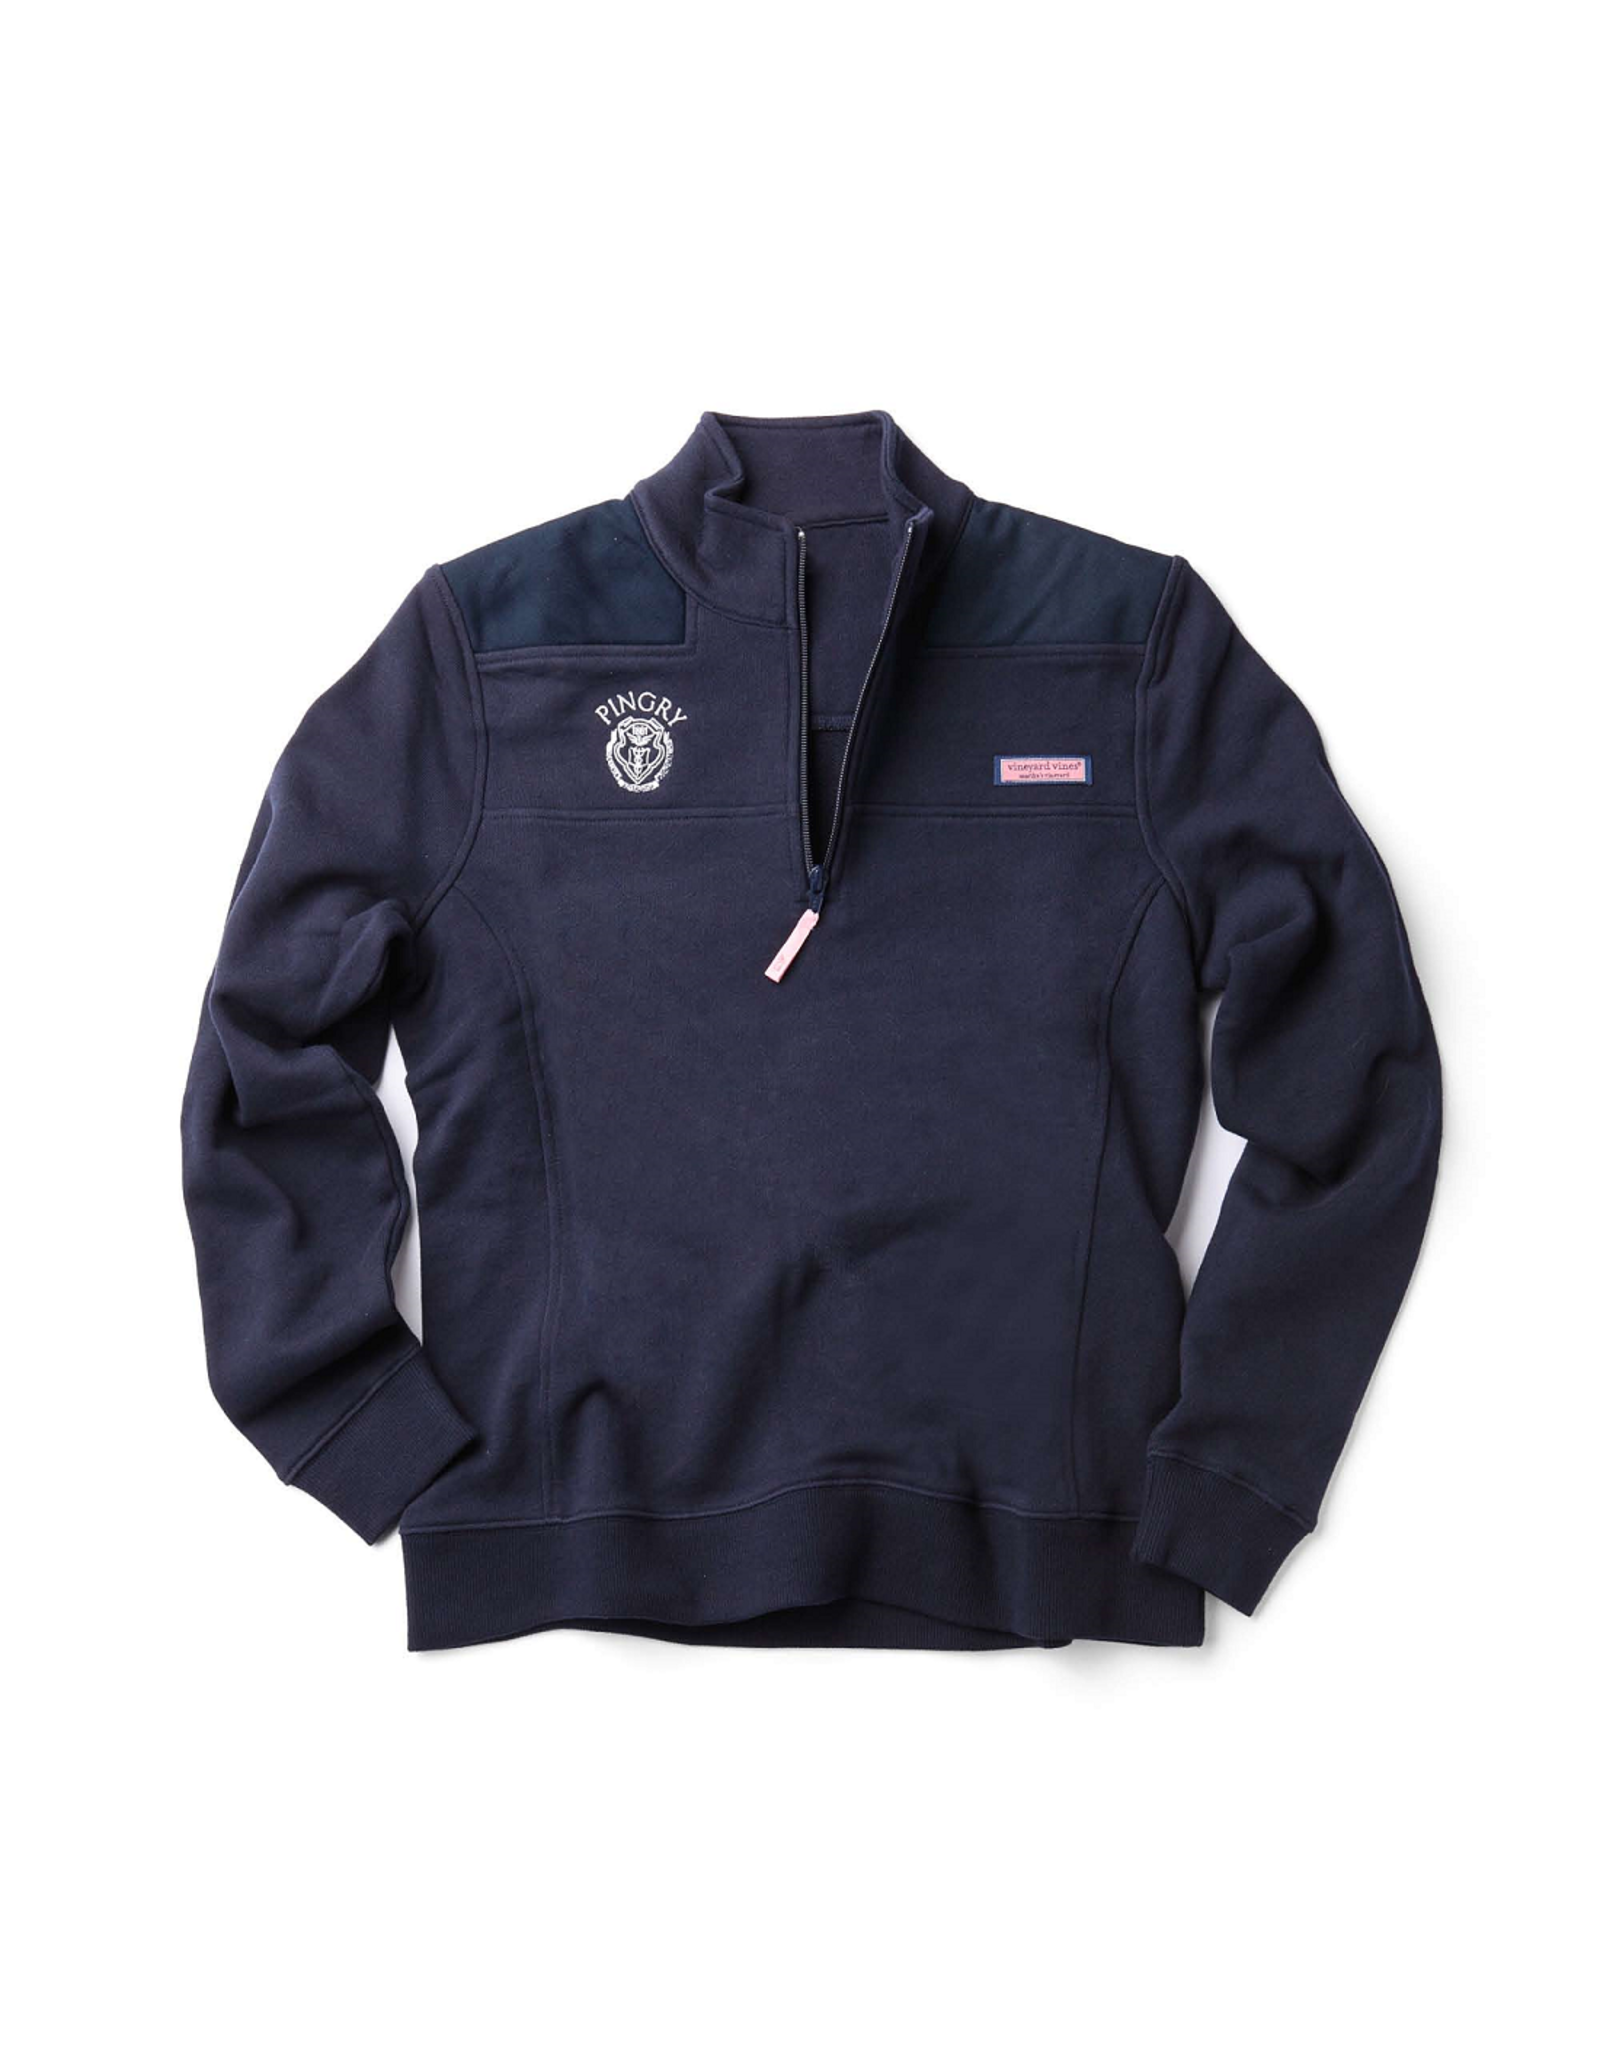 Shep Shirt with Pingry Seal